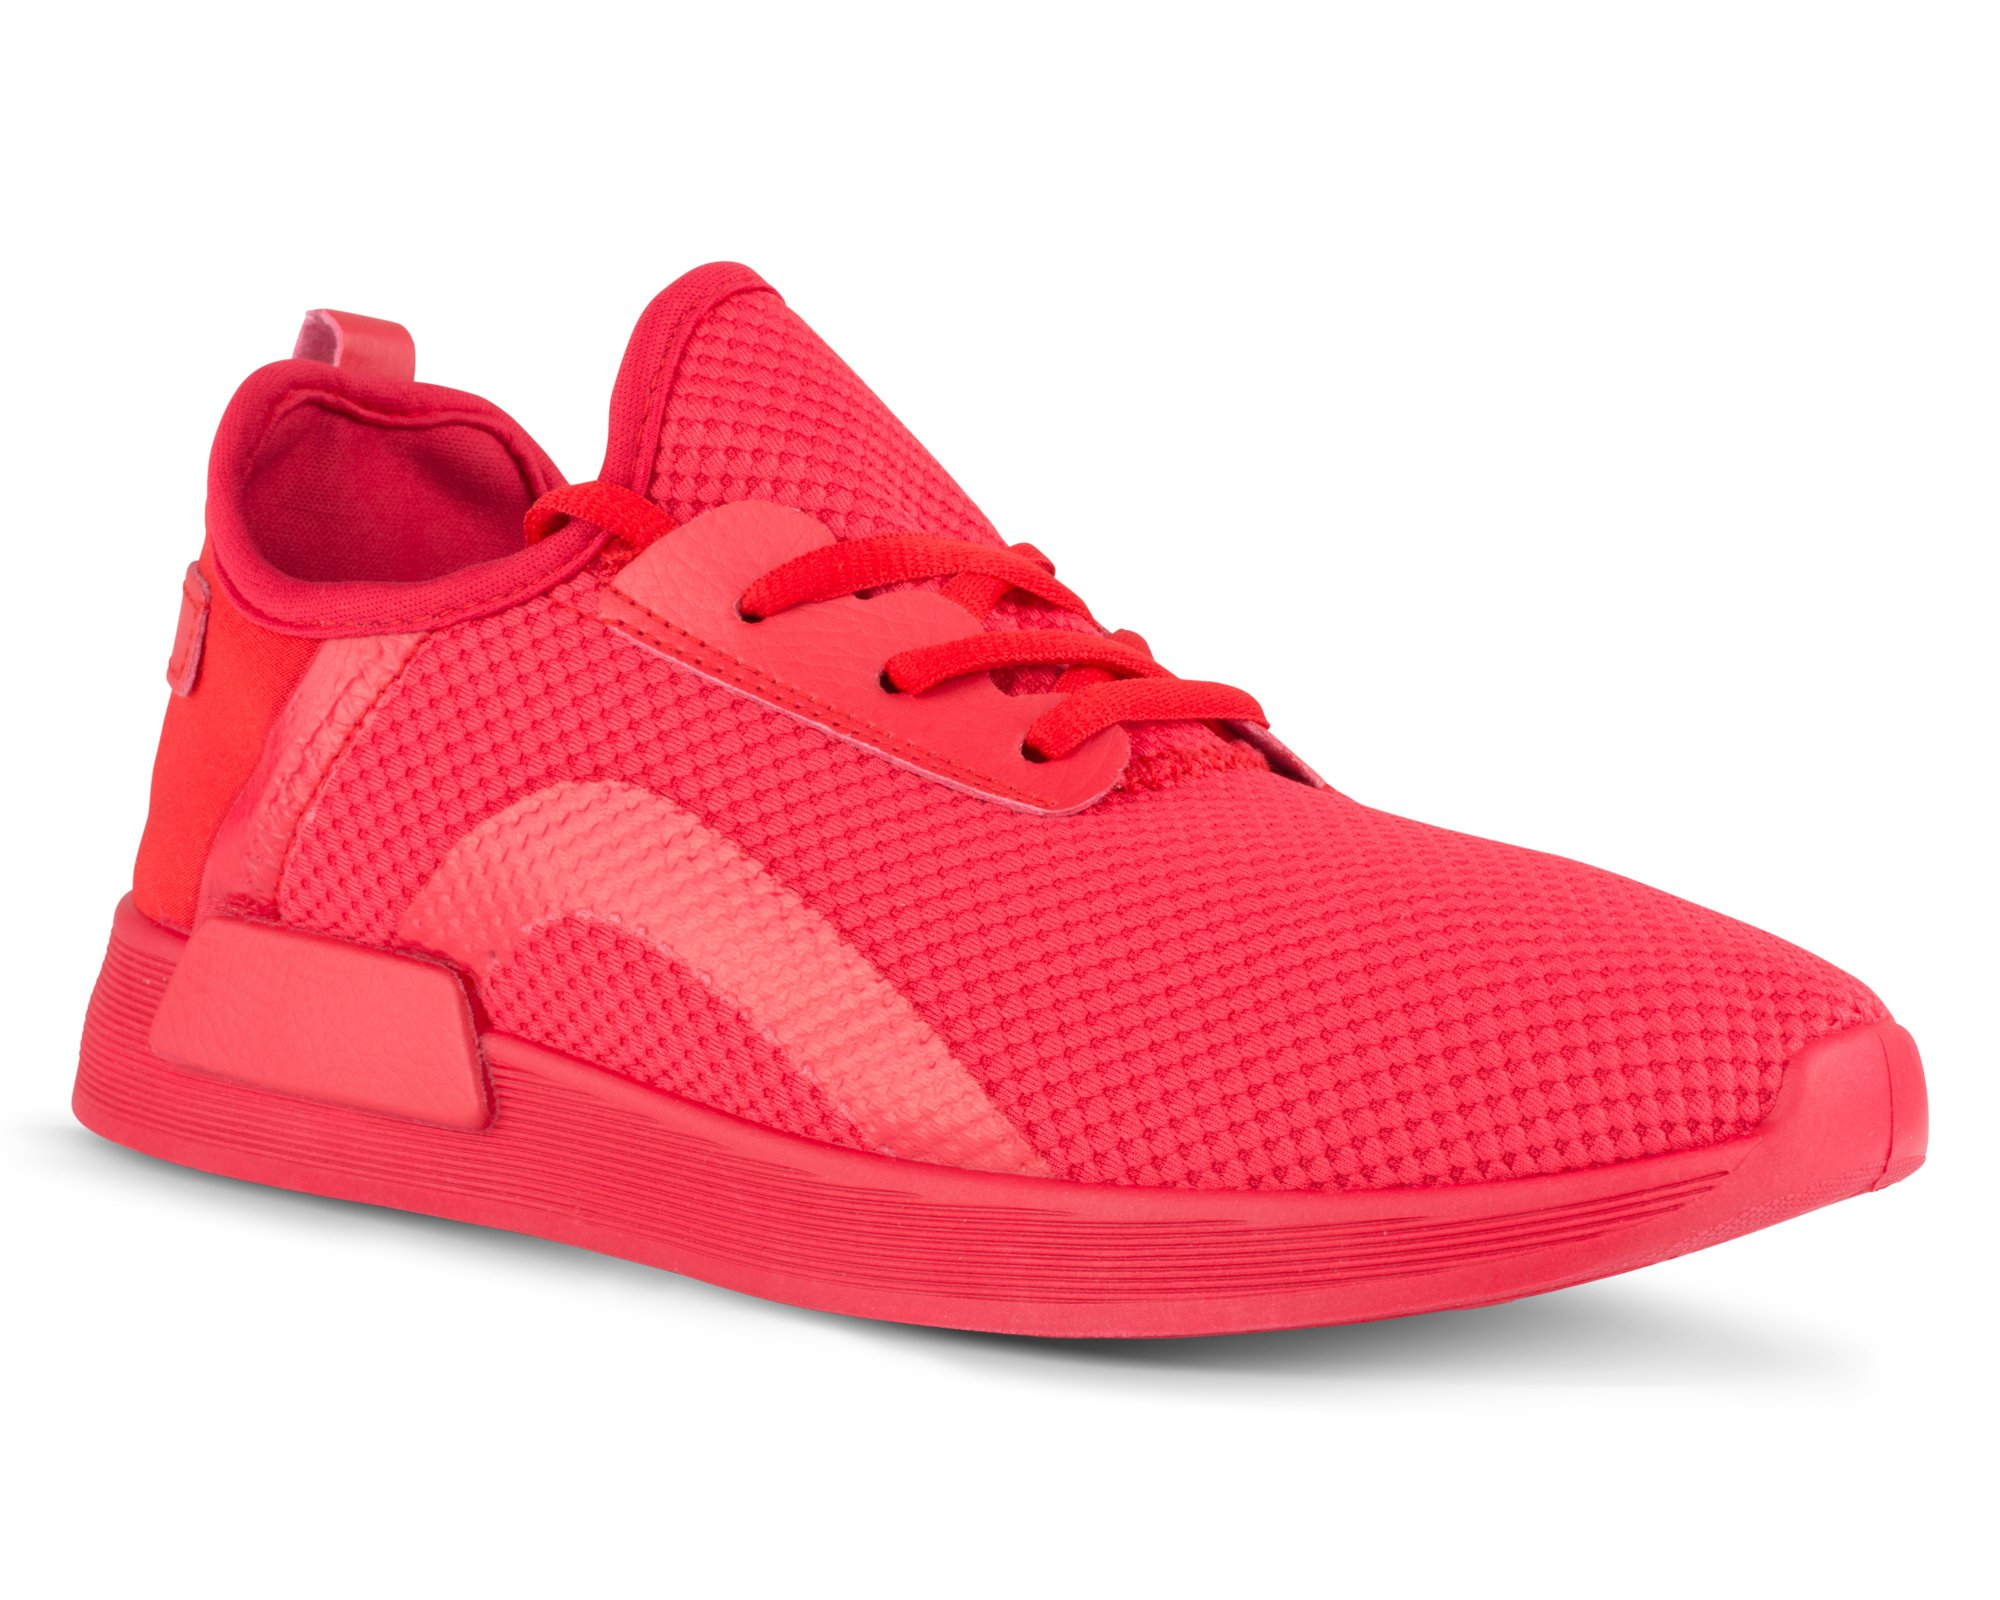 Twisted Womens Dimitria Lightweight Mesh Athletic Fashion Sneaker - DIMITRIA06 RED, Size 8.5